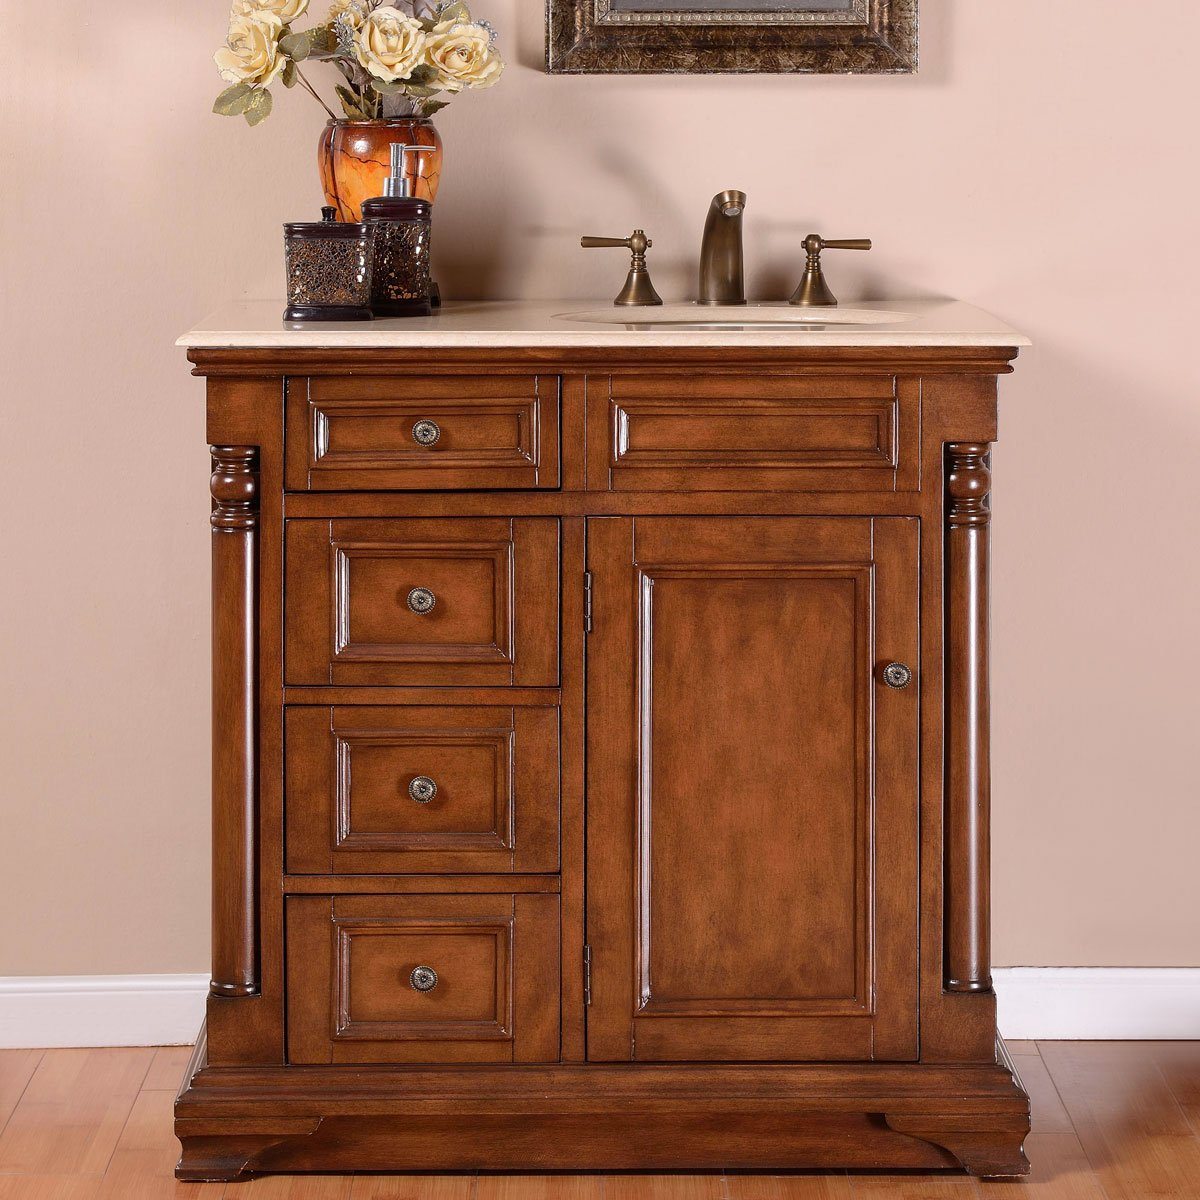 Silkroad Exclusive Single Right Sink Bathroom Vanity with Furniture Cabinet, 36-Inch by Silkroad Exclusive